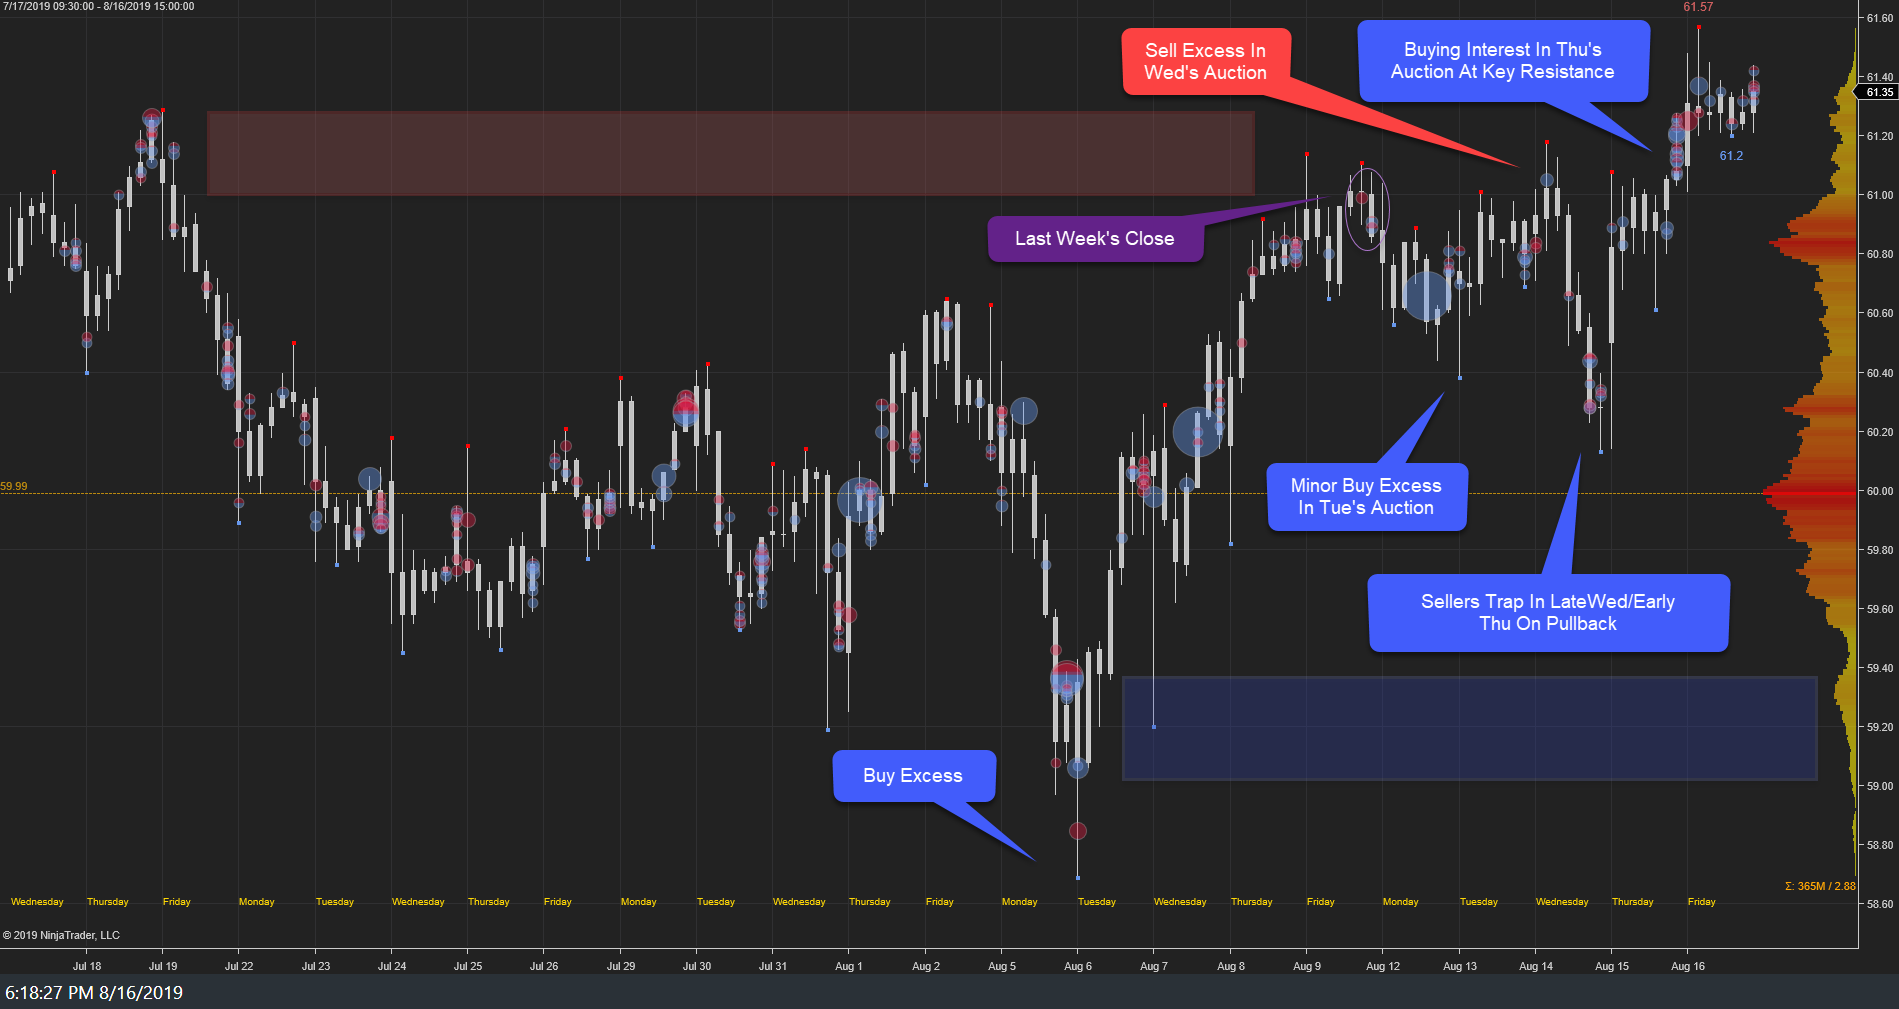 XLU Weekly: Price Discovery To New All-Time Highs Before Pullback Late Week